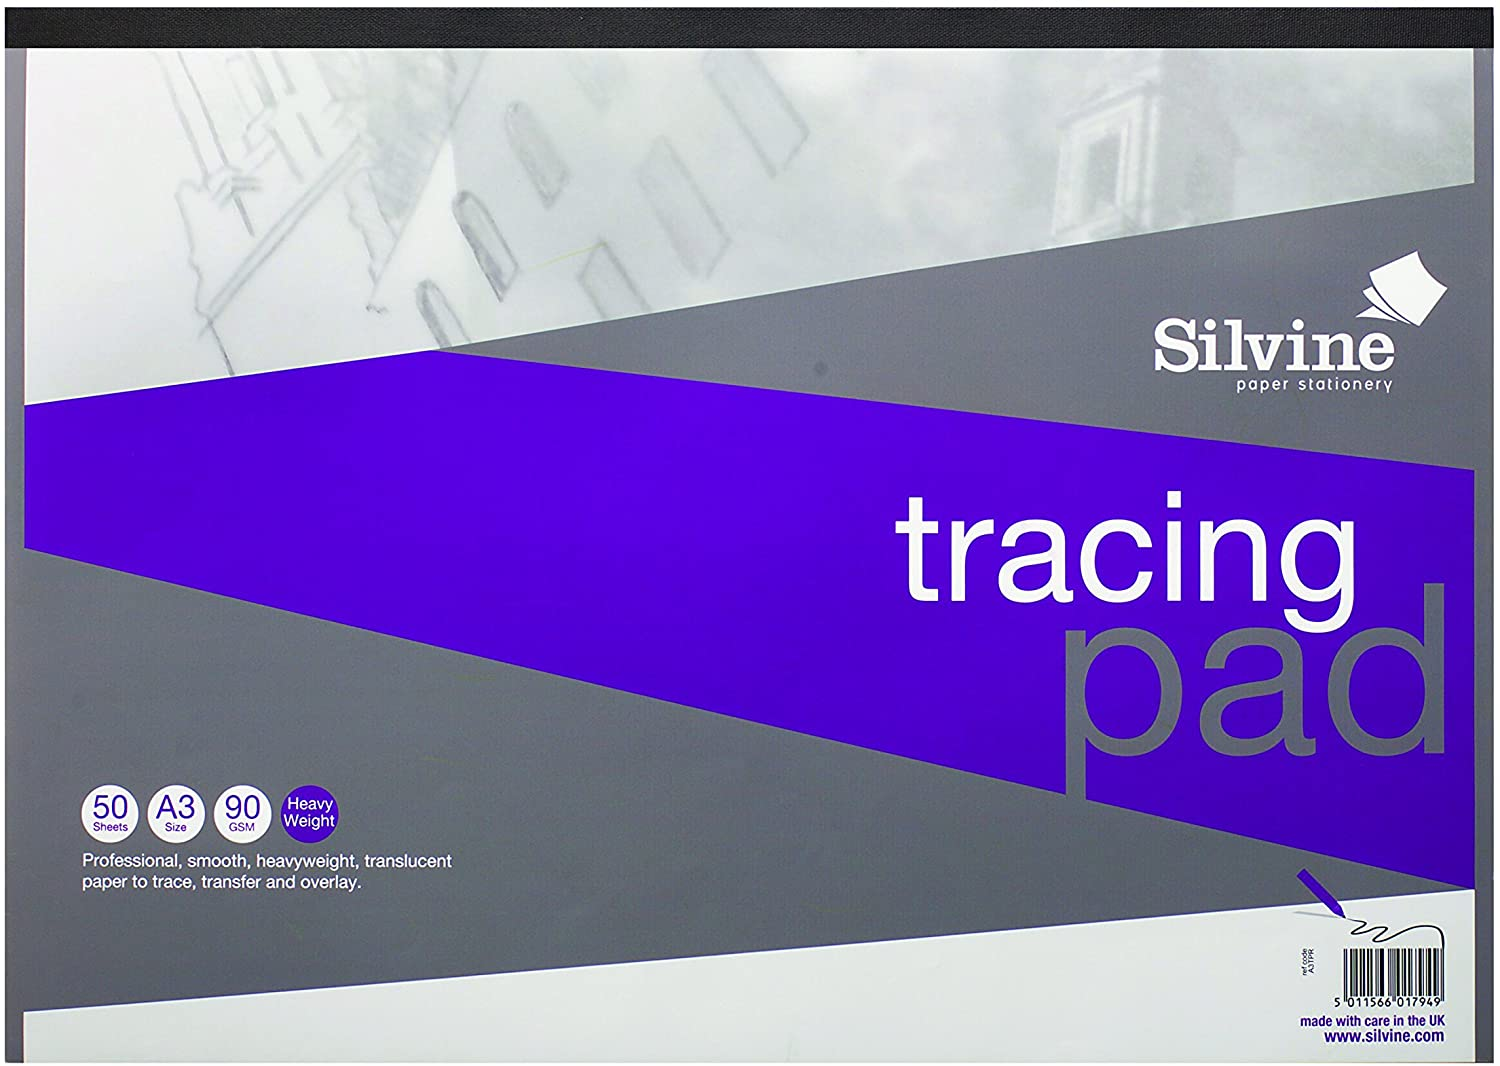 Silvine A3 Professional Tracing Pad. 50 Sheets of Quality Heavyweight Tracing Paper (90gsm) Ref A3TPR